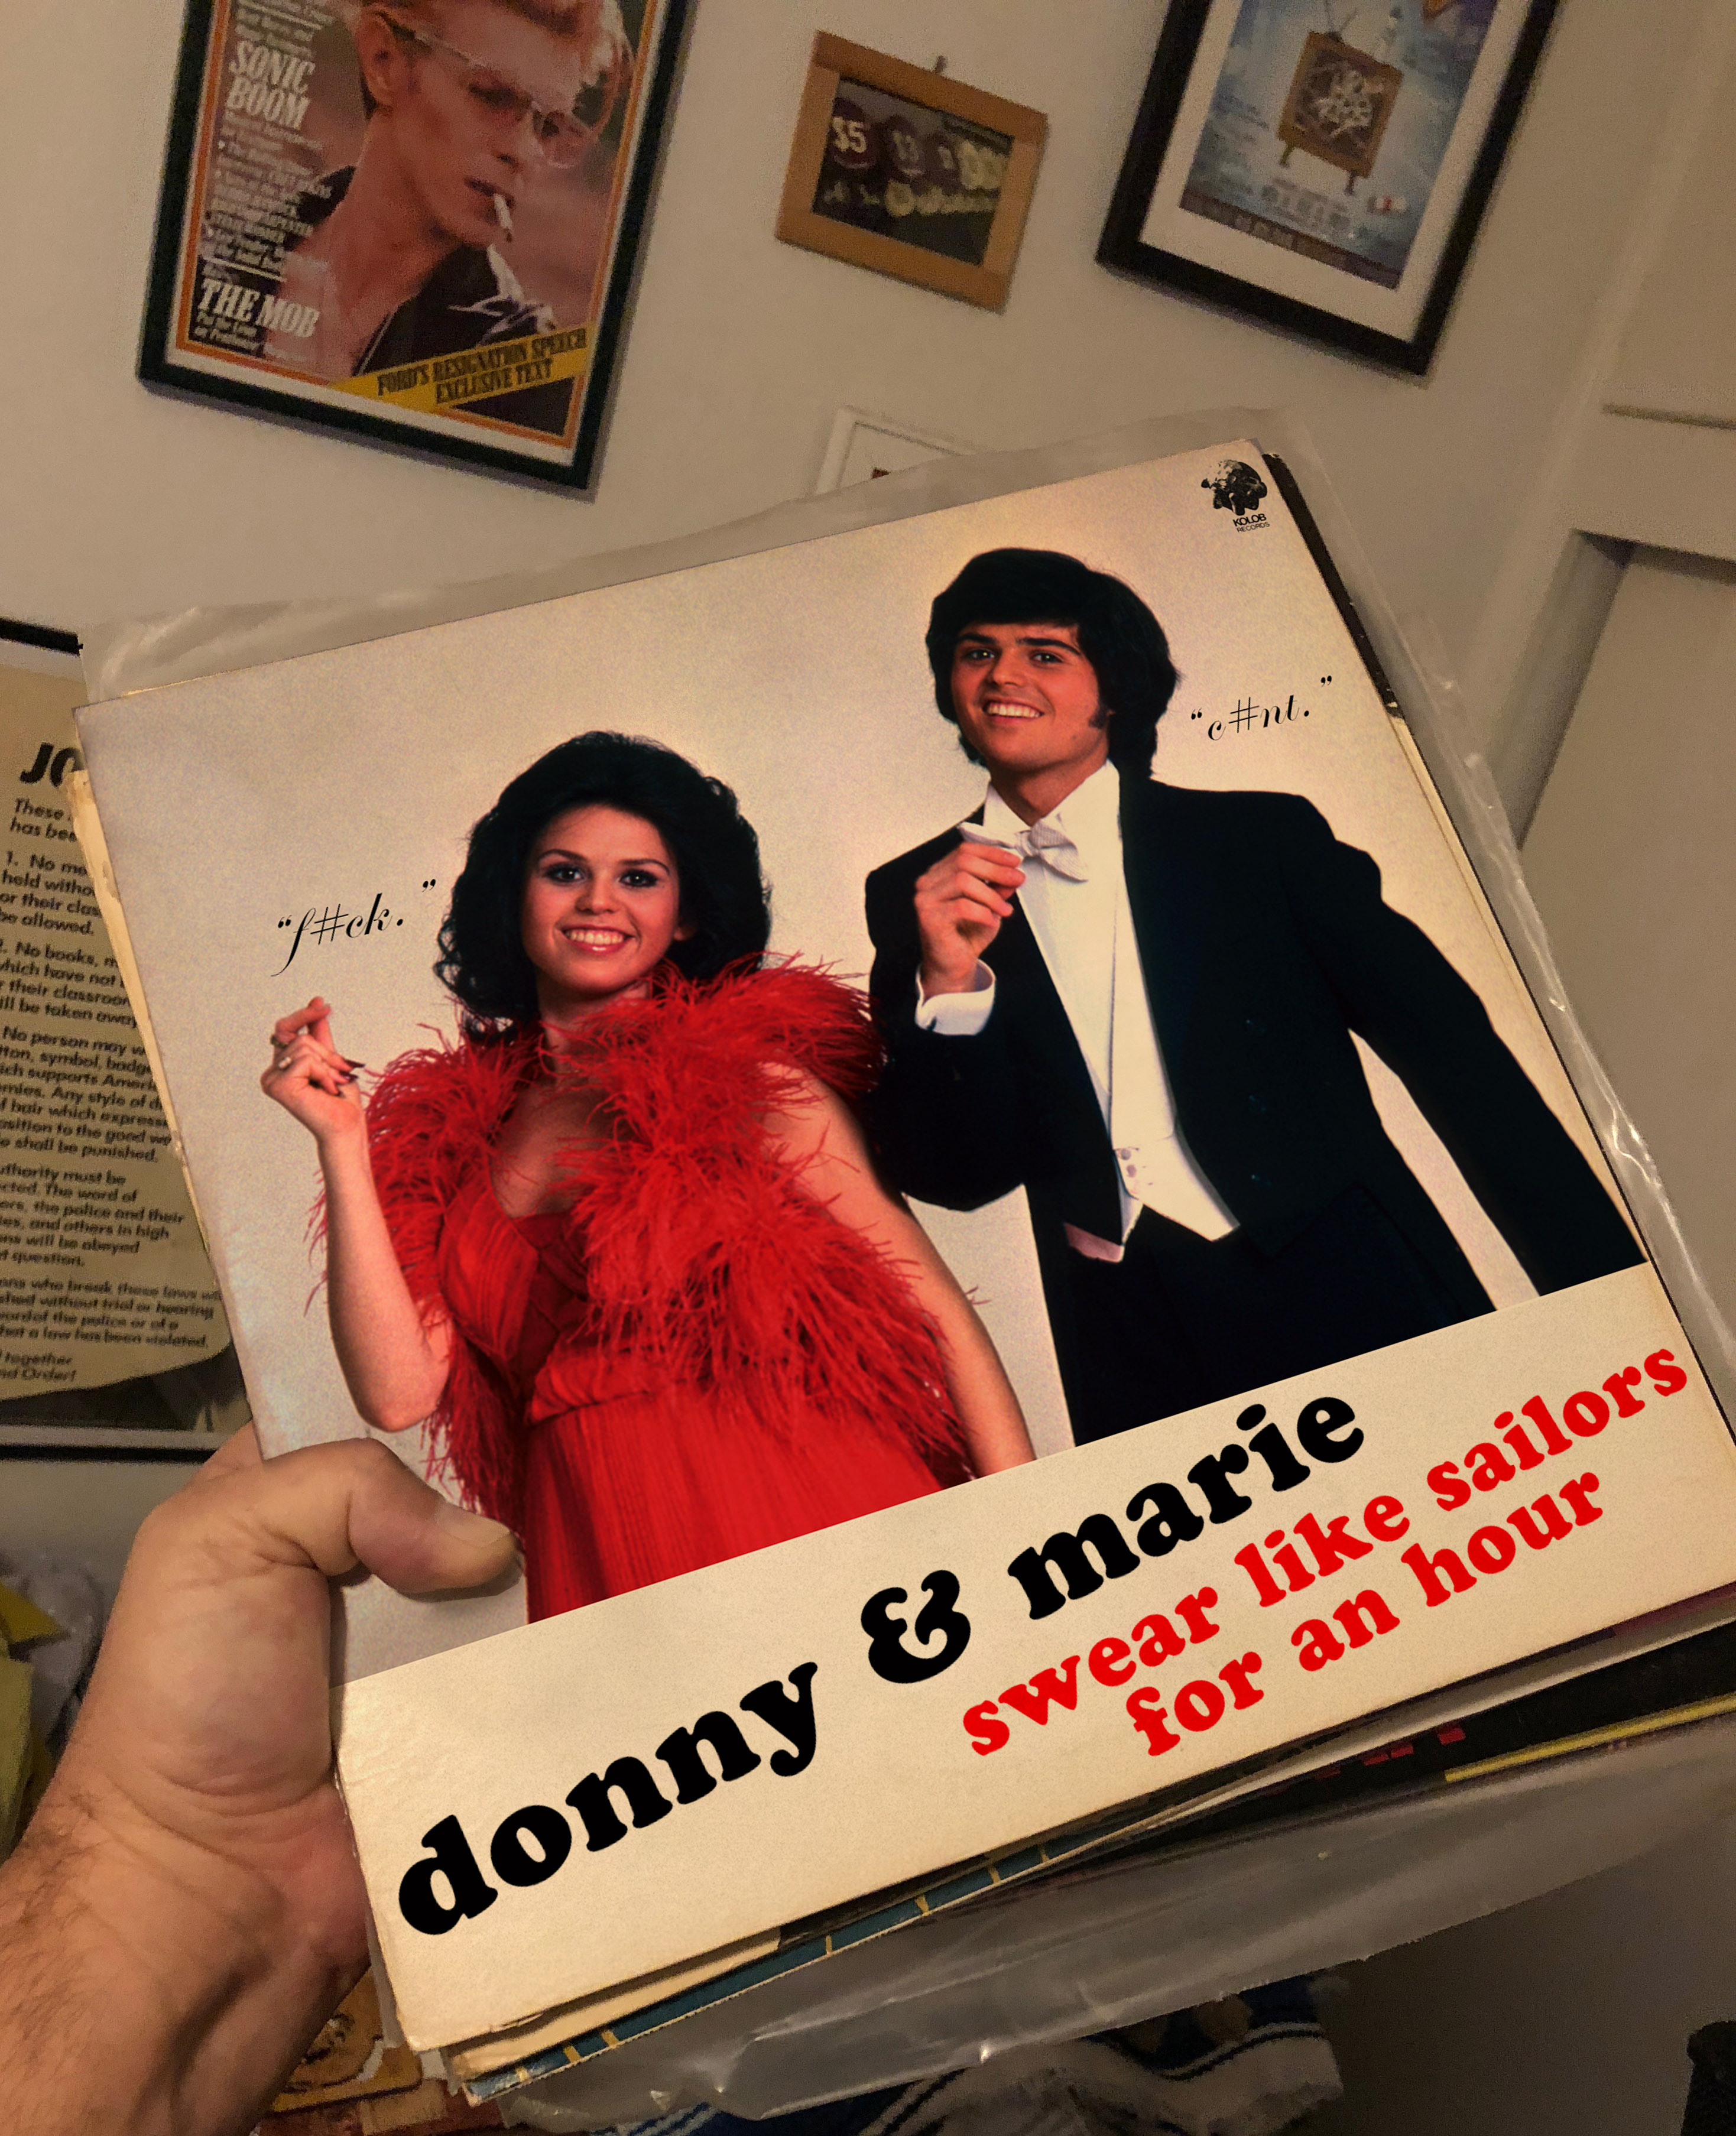 donny and marie.jpg